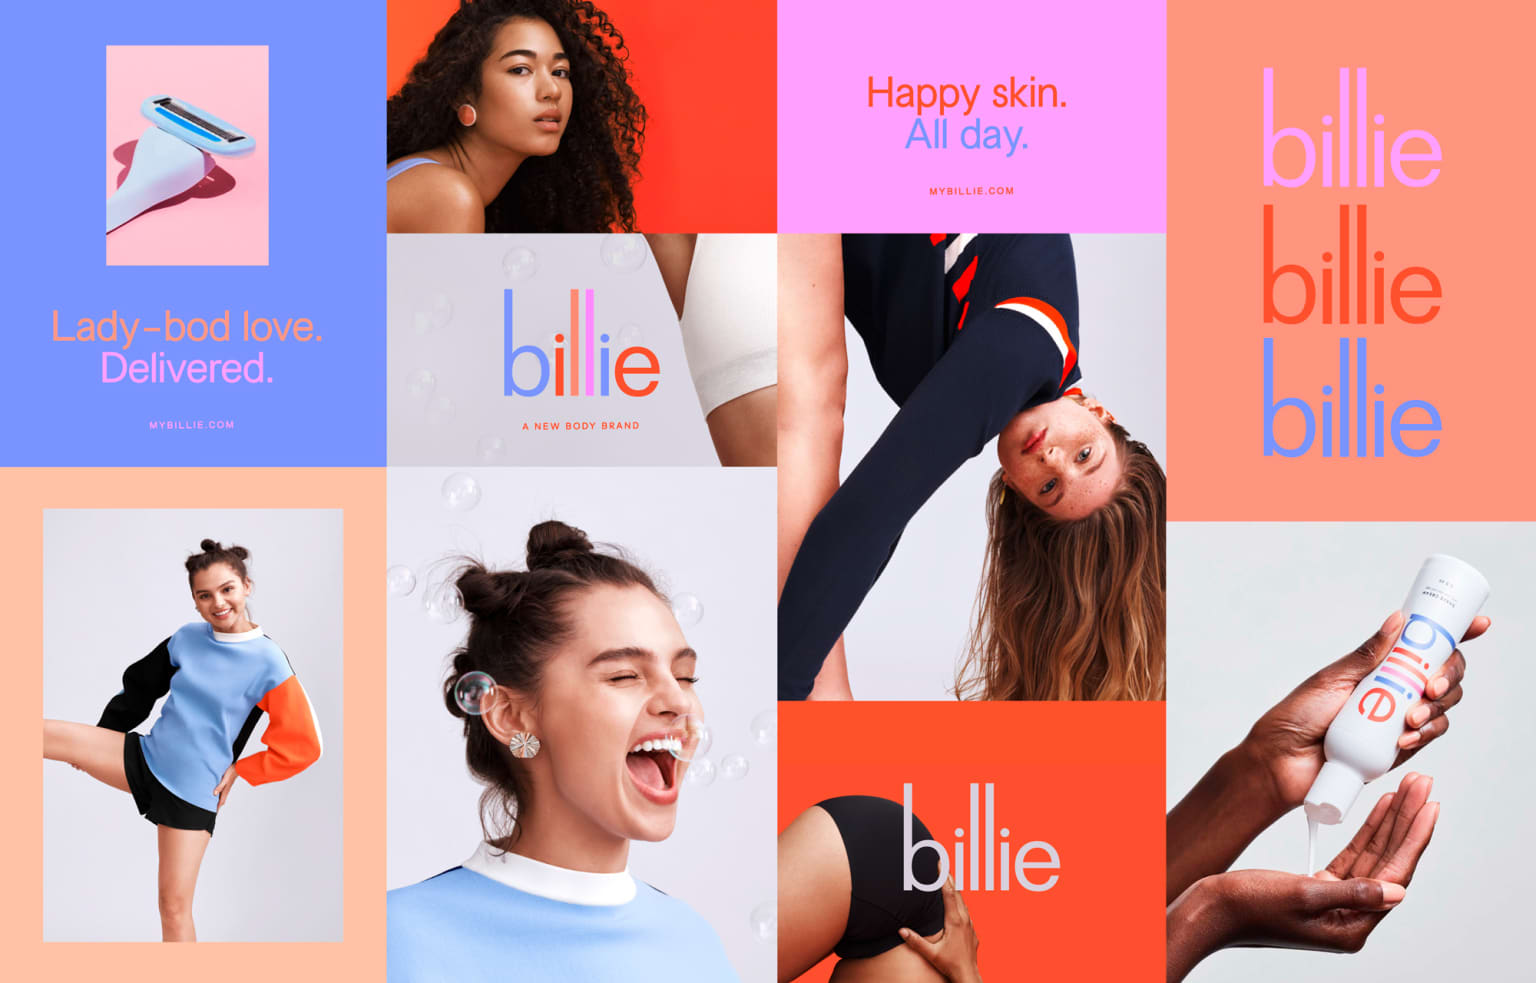 Billie — The New Body Brand